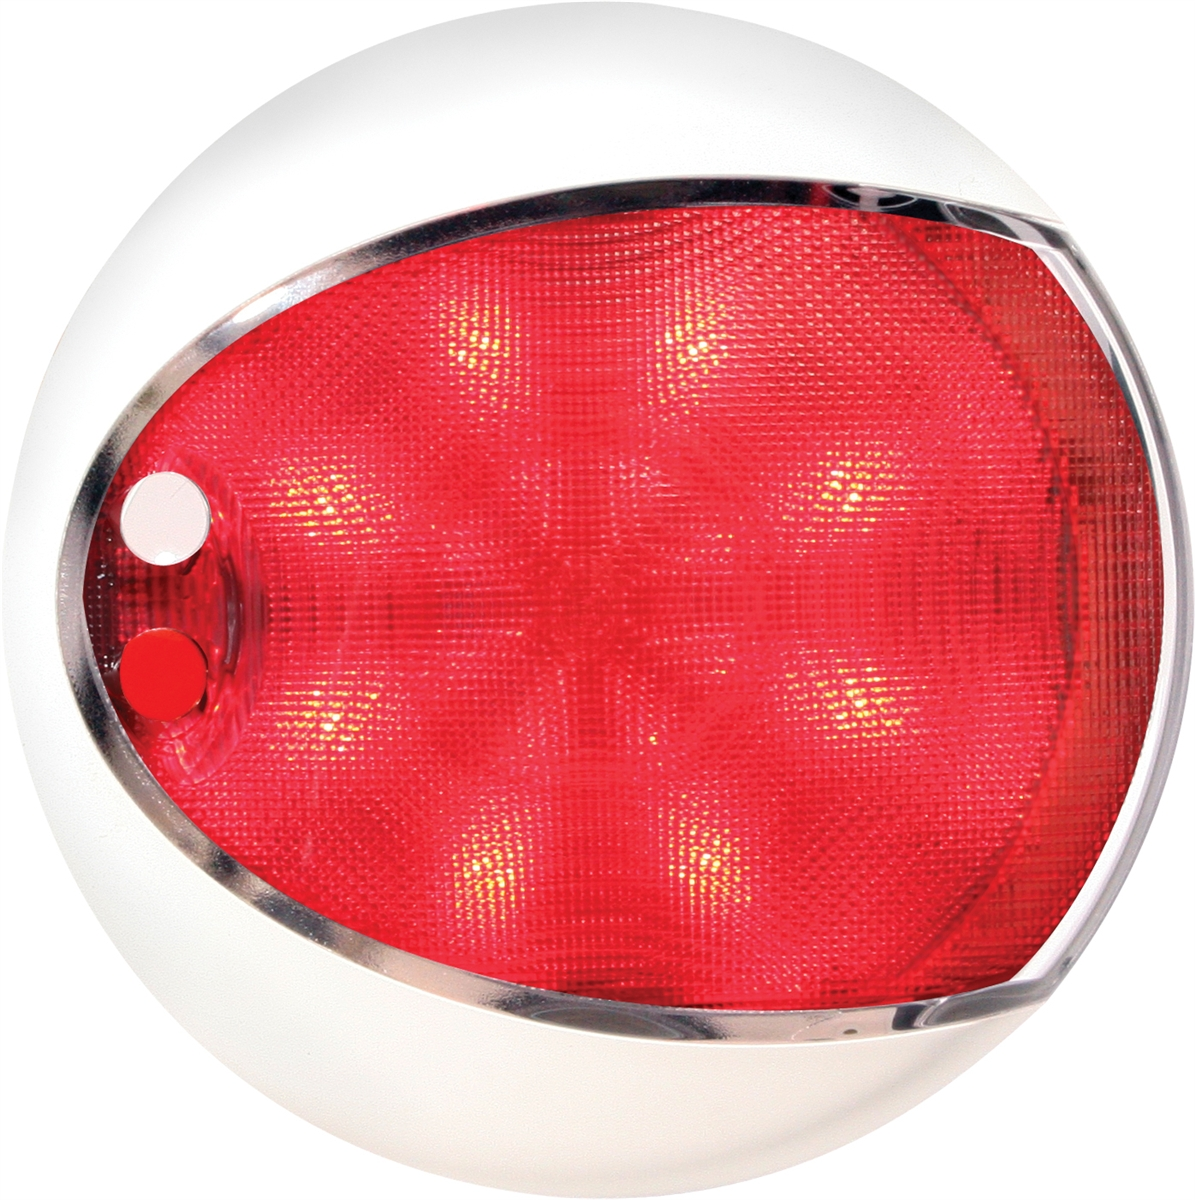 Red White Euroled Touch Lamps Shroud